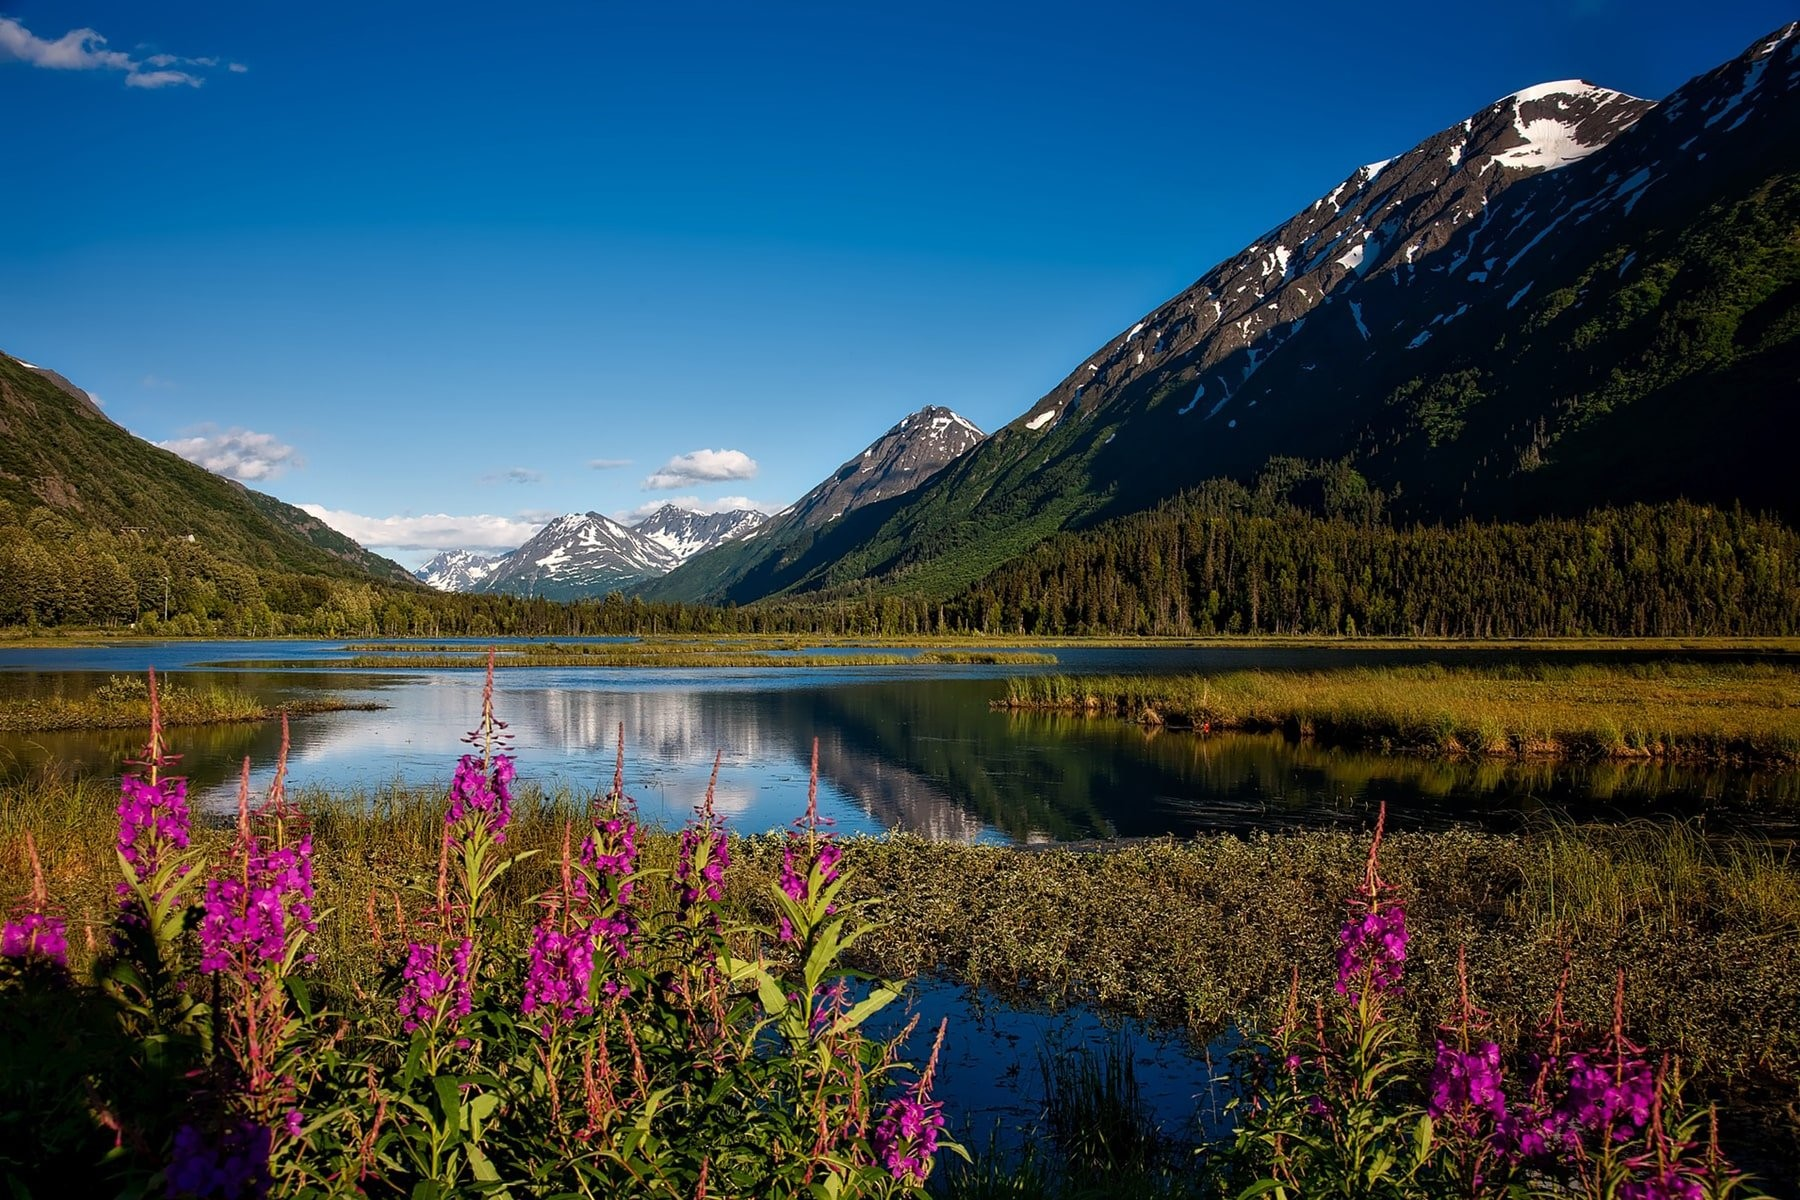 Chugach national forest in Alaska